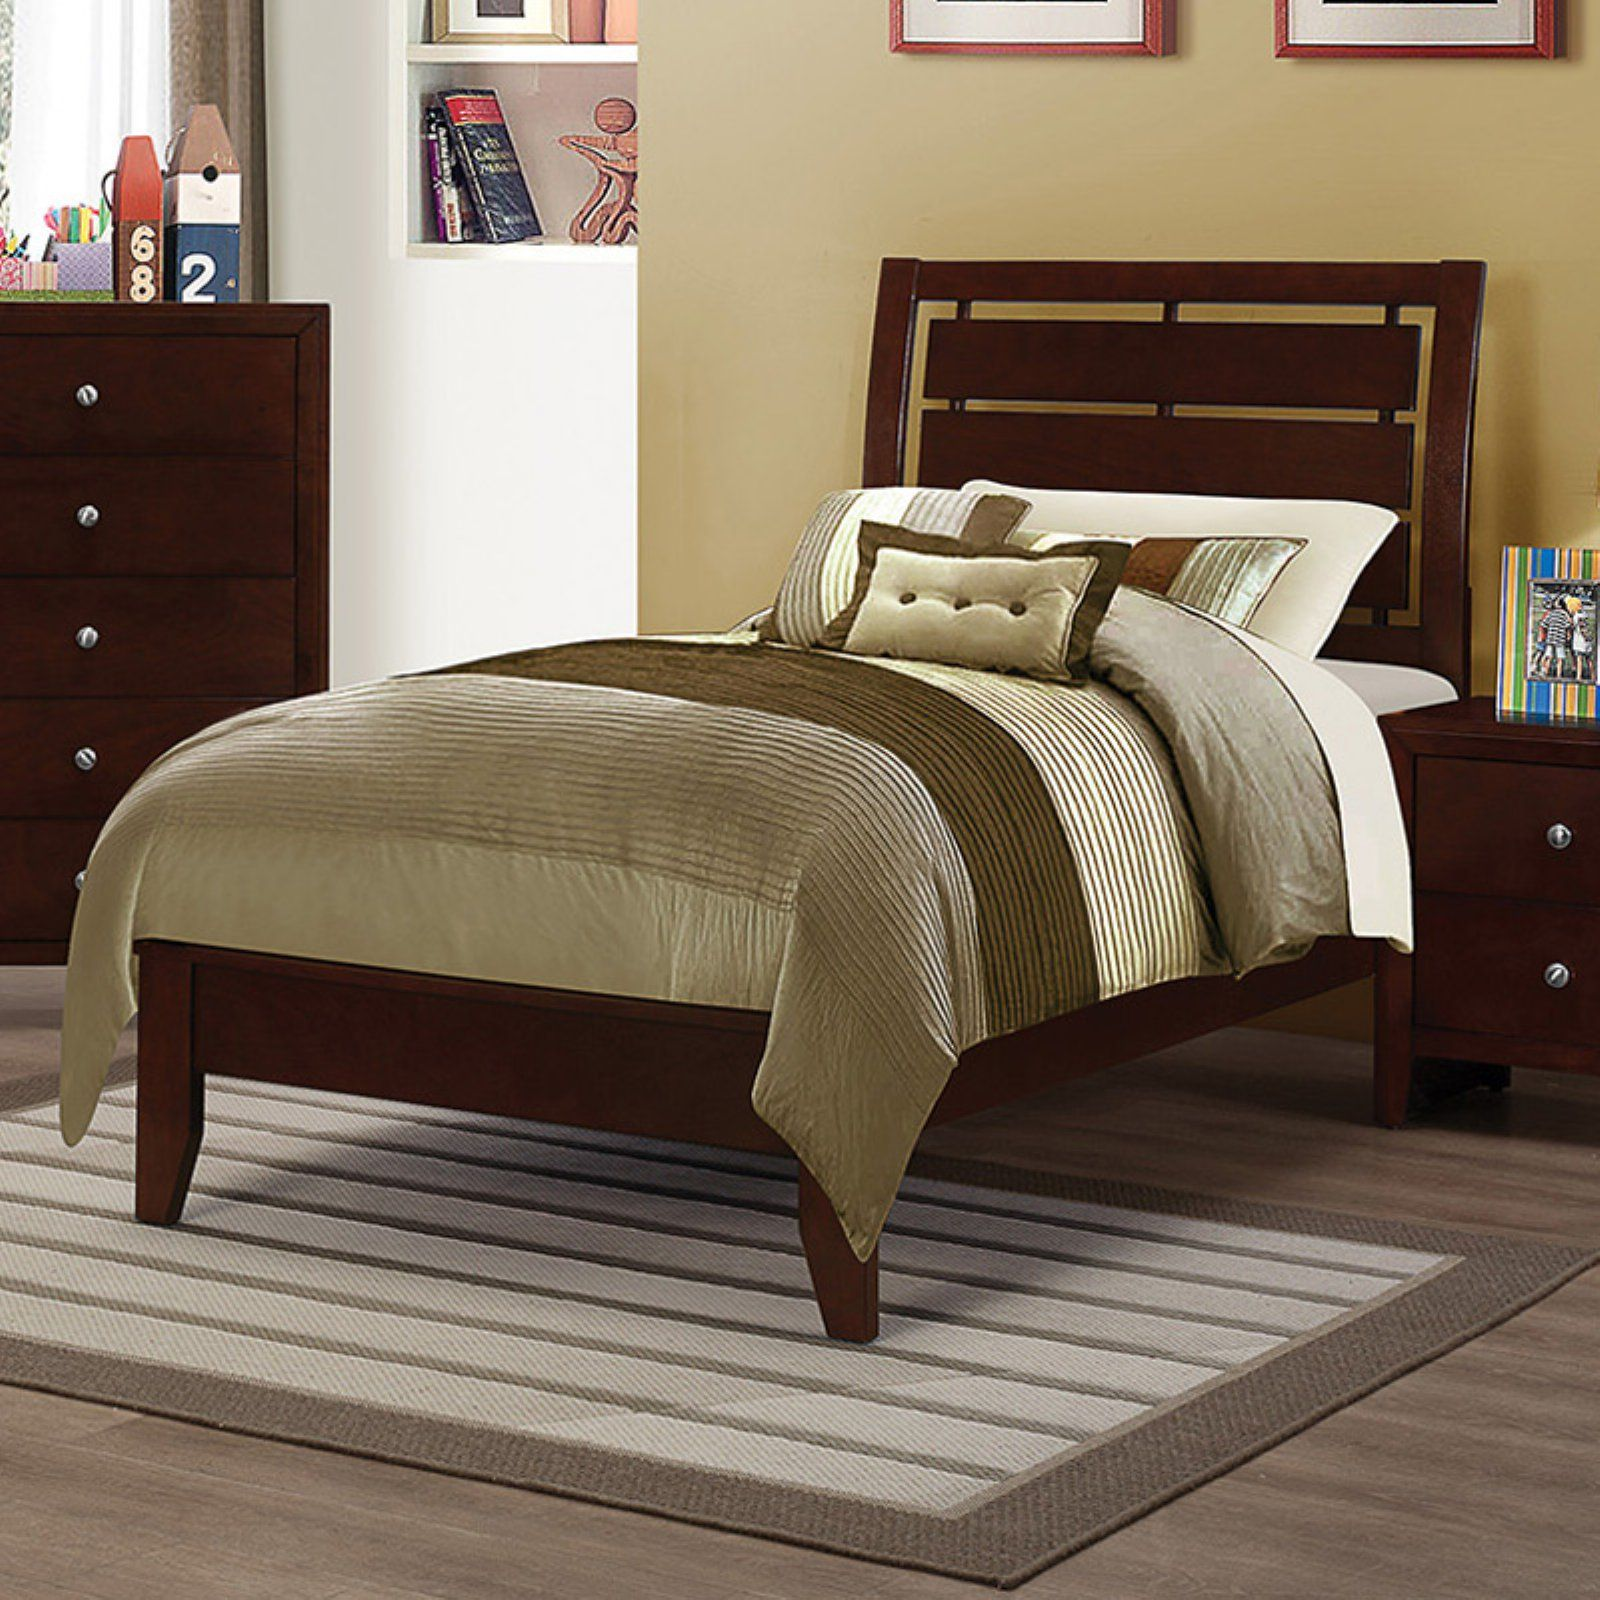 Coaster Furniture Serenity Panel Bed, Size: Twin